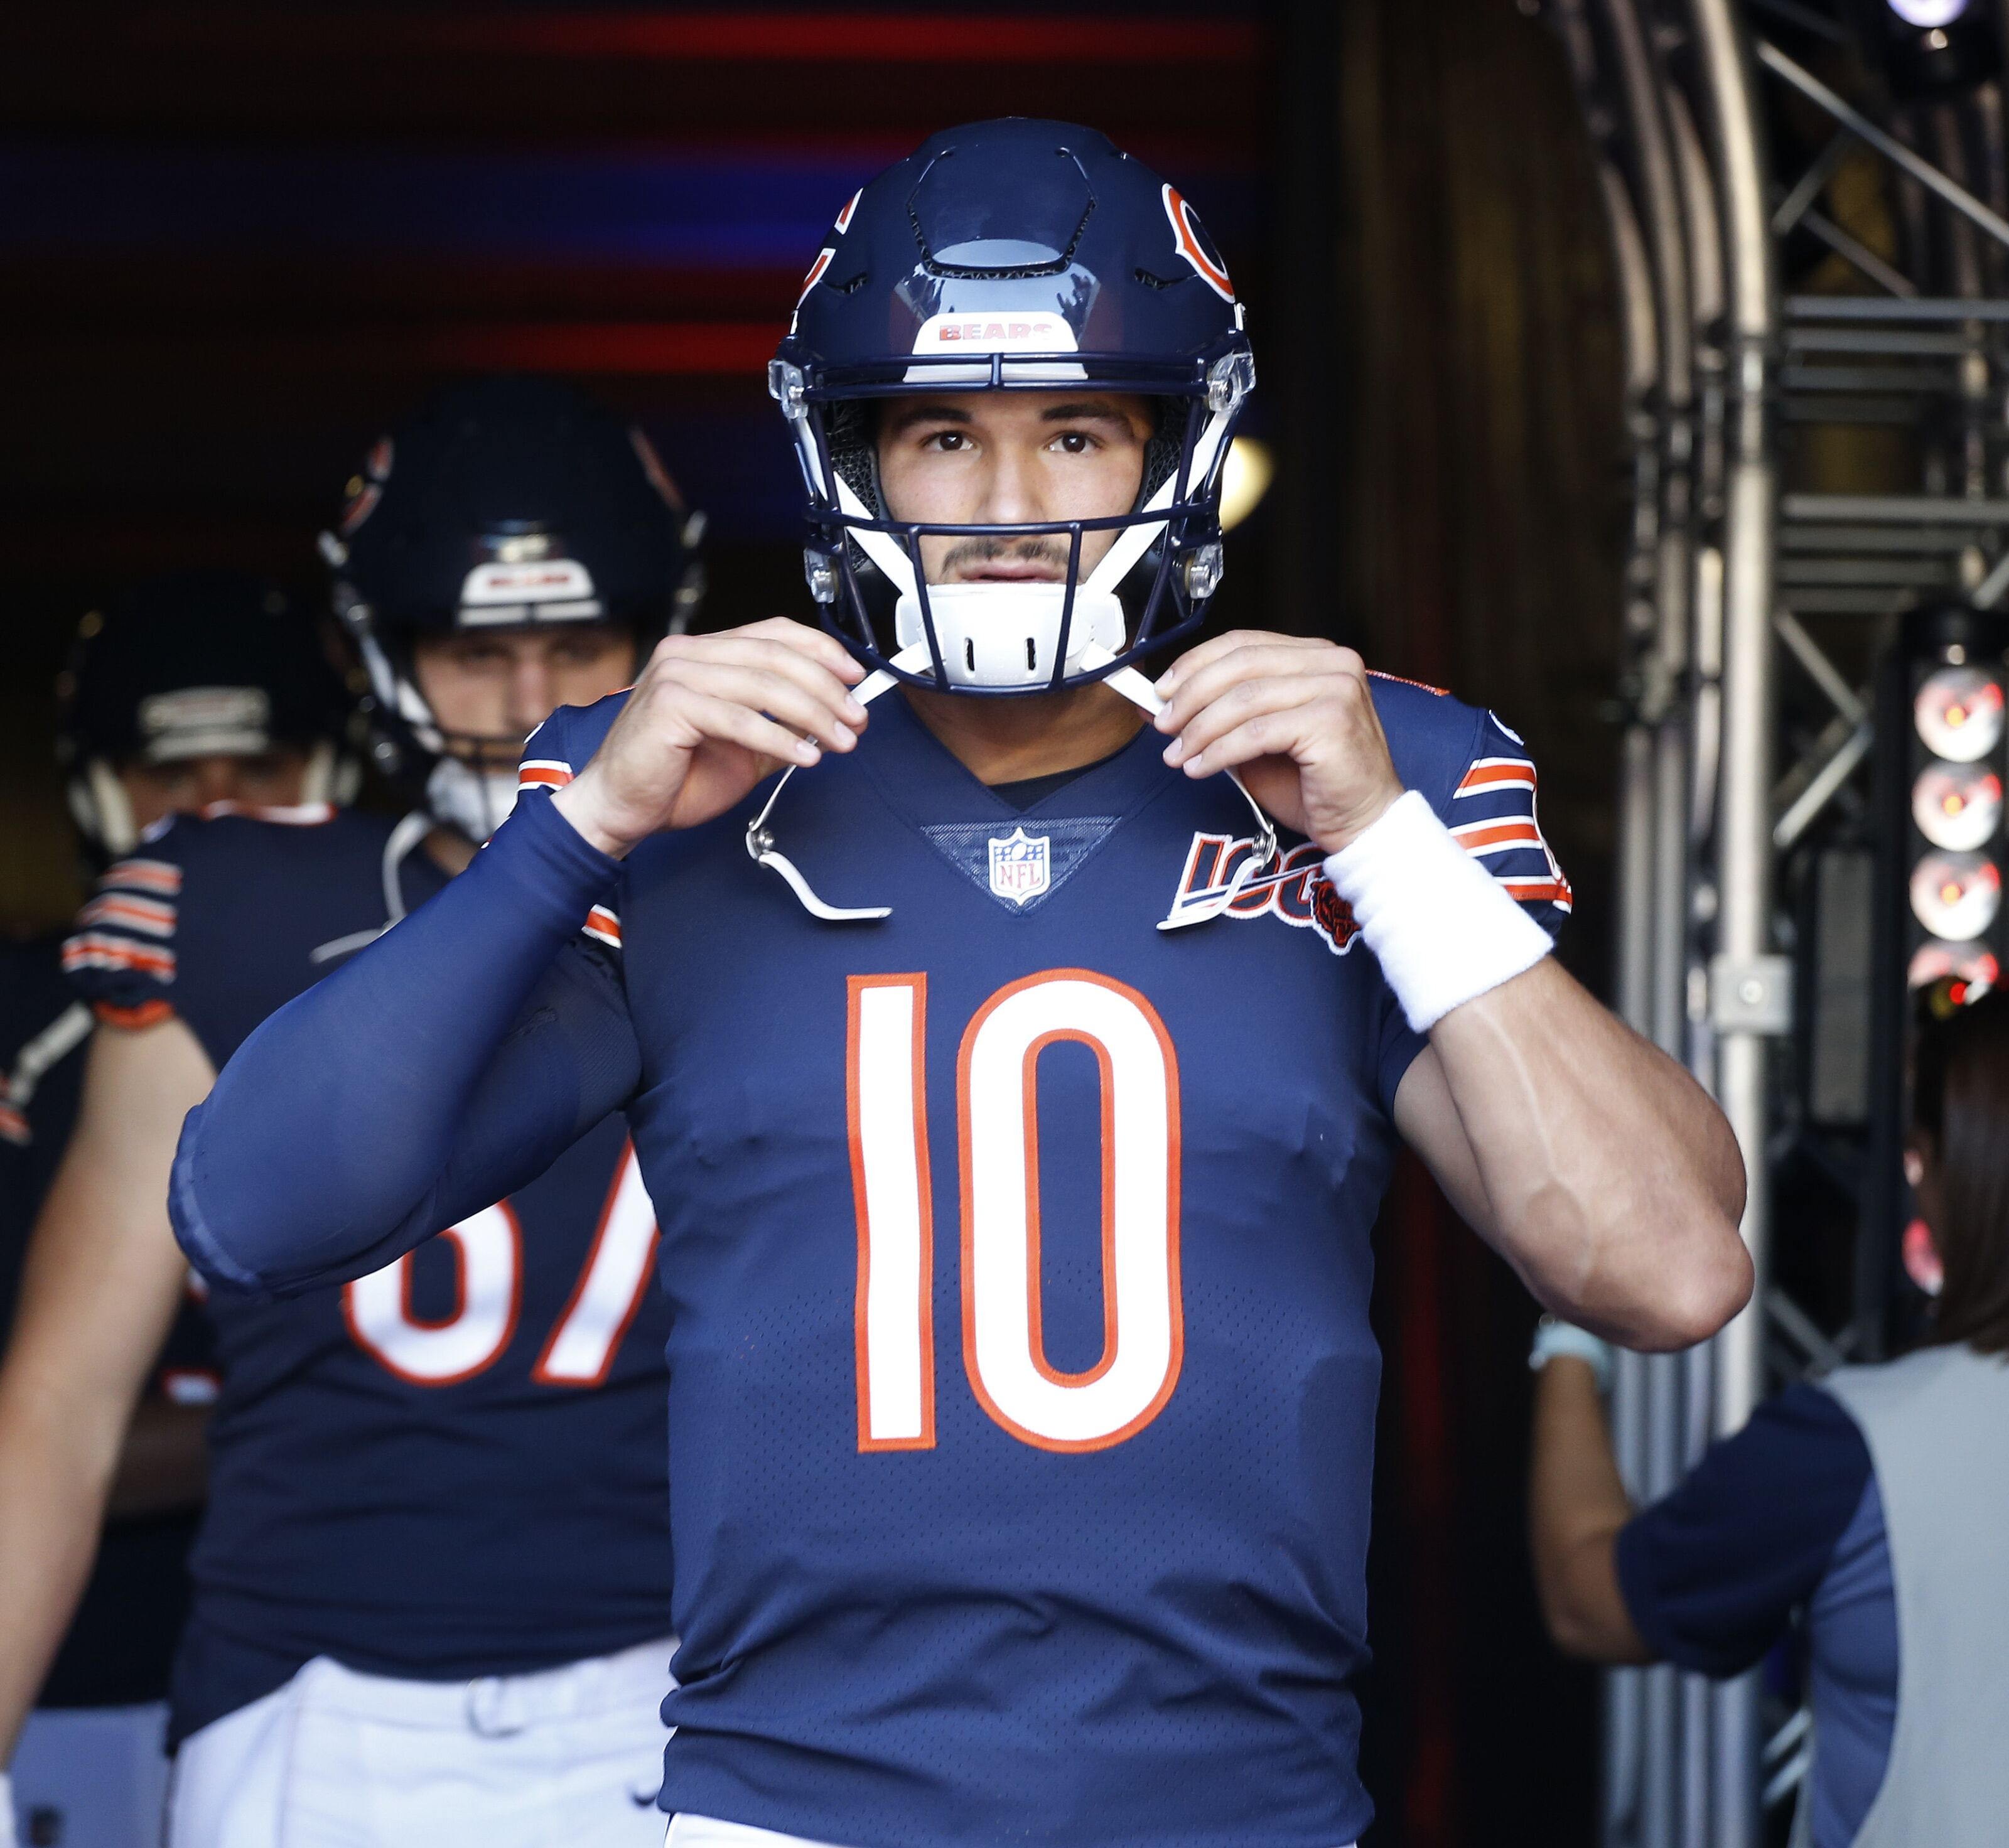 size 40 c8543 d7e5d Chicago Bears: Is Mitch Trubisky following path of Alex Smith?